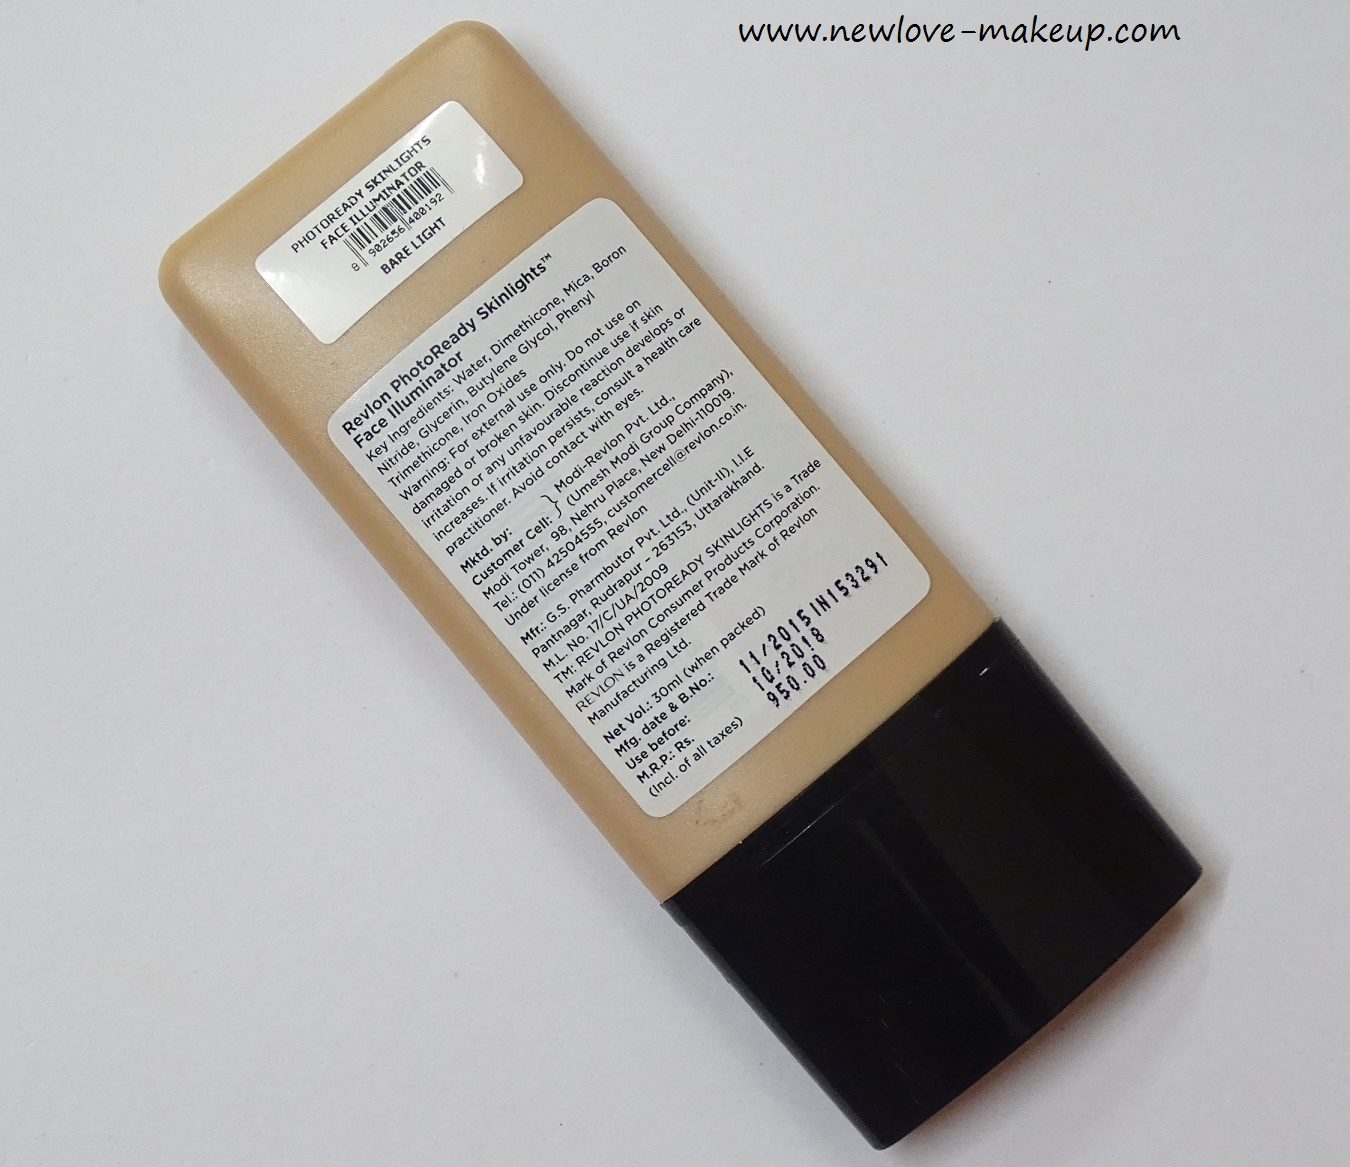 Revlon Photoready Skinlights Face Illuminator Review, Swatches ...